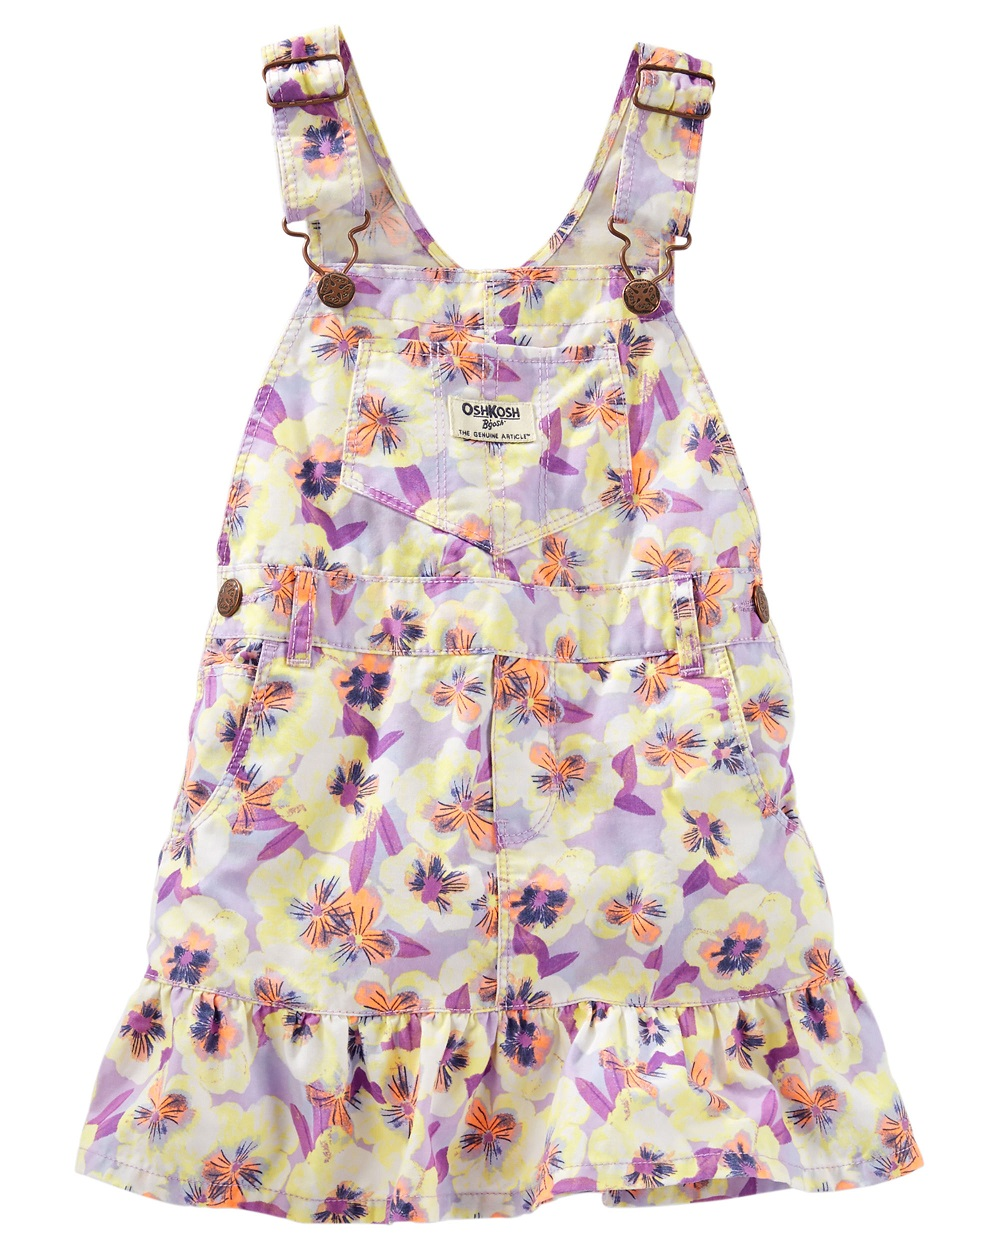 "Floral 9 months OshKosh Baby Girls/' /""Flowery Flounce/"" Overall Skirt"